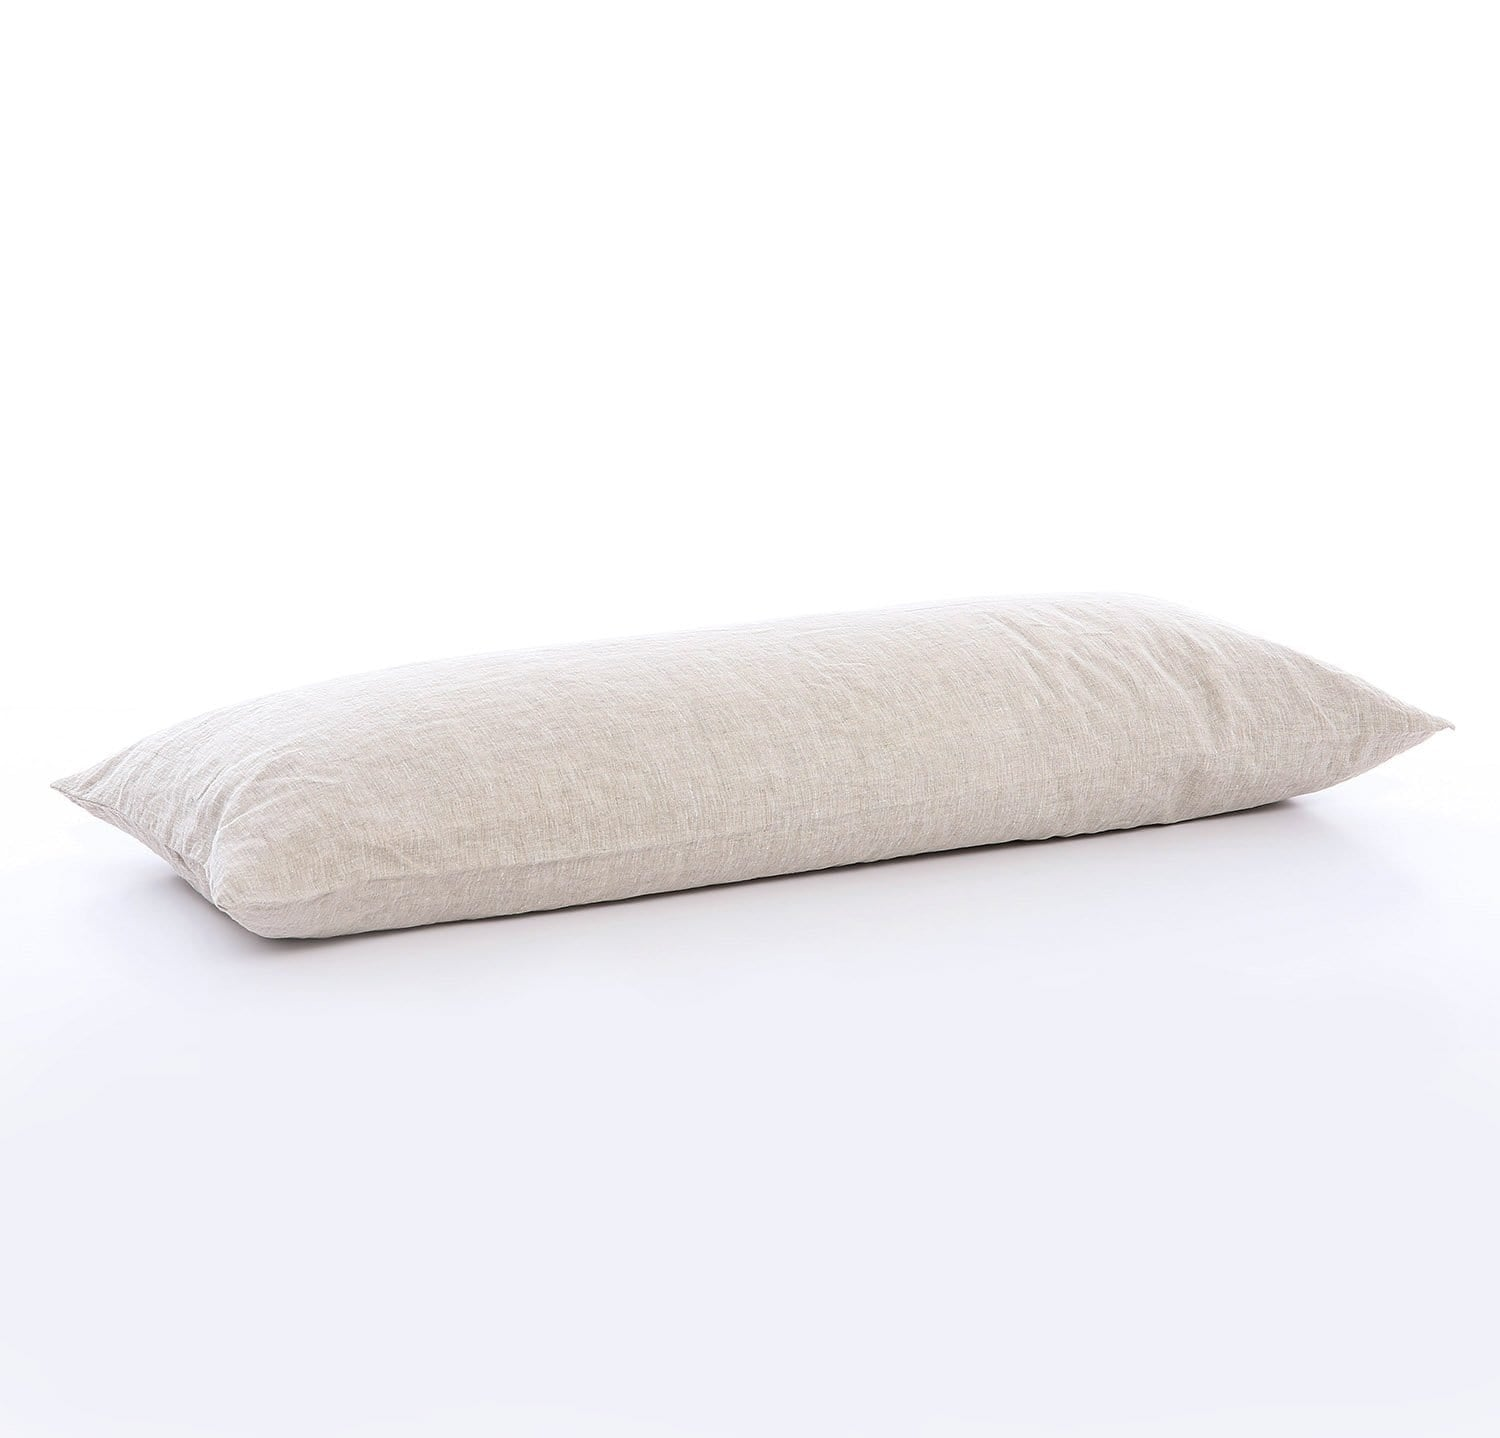 100% linen body pillow case mid-weight St. Barts linen fabric un-dyed natural taupe beige color